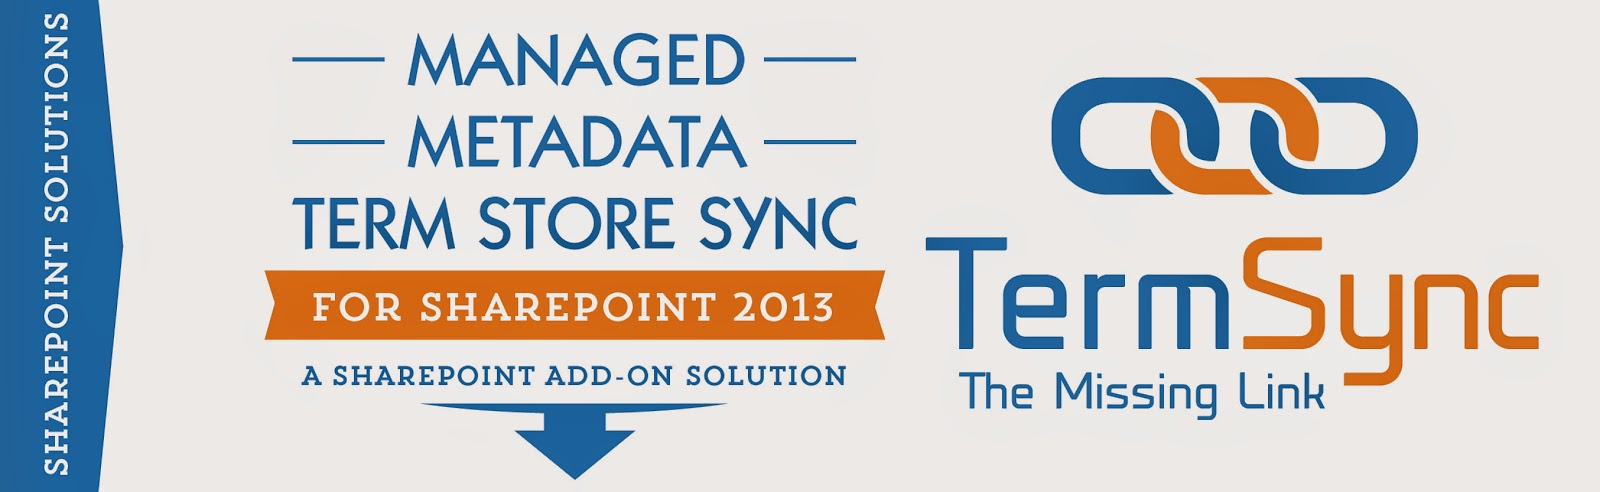 Managed Metadata Term Store Sync 2013